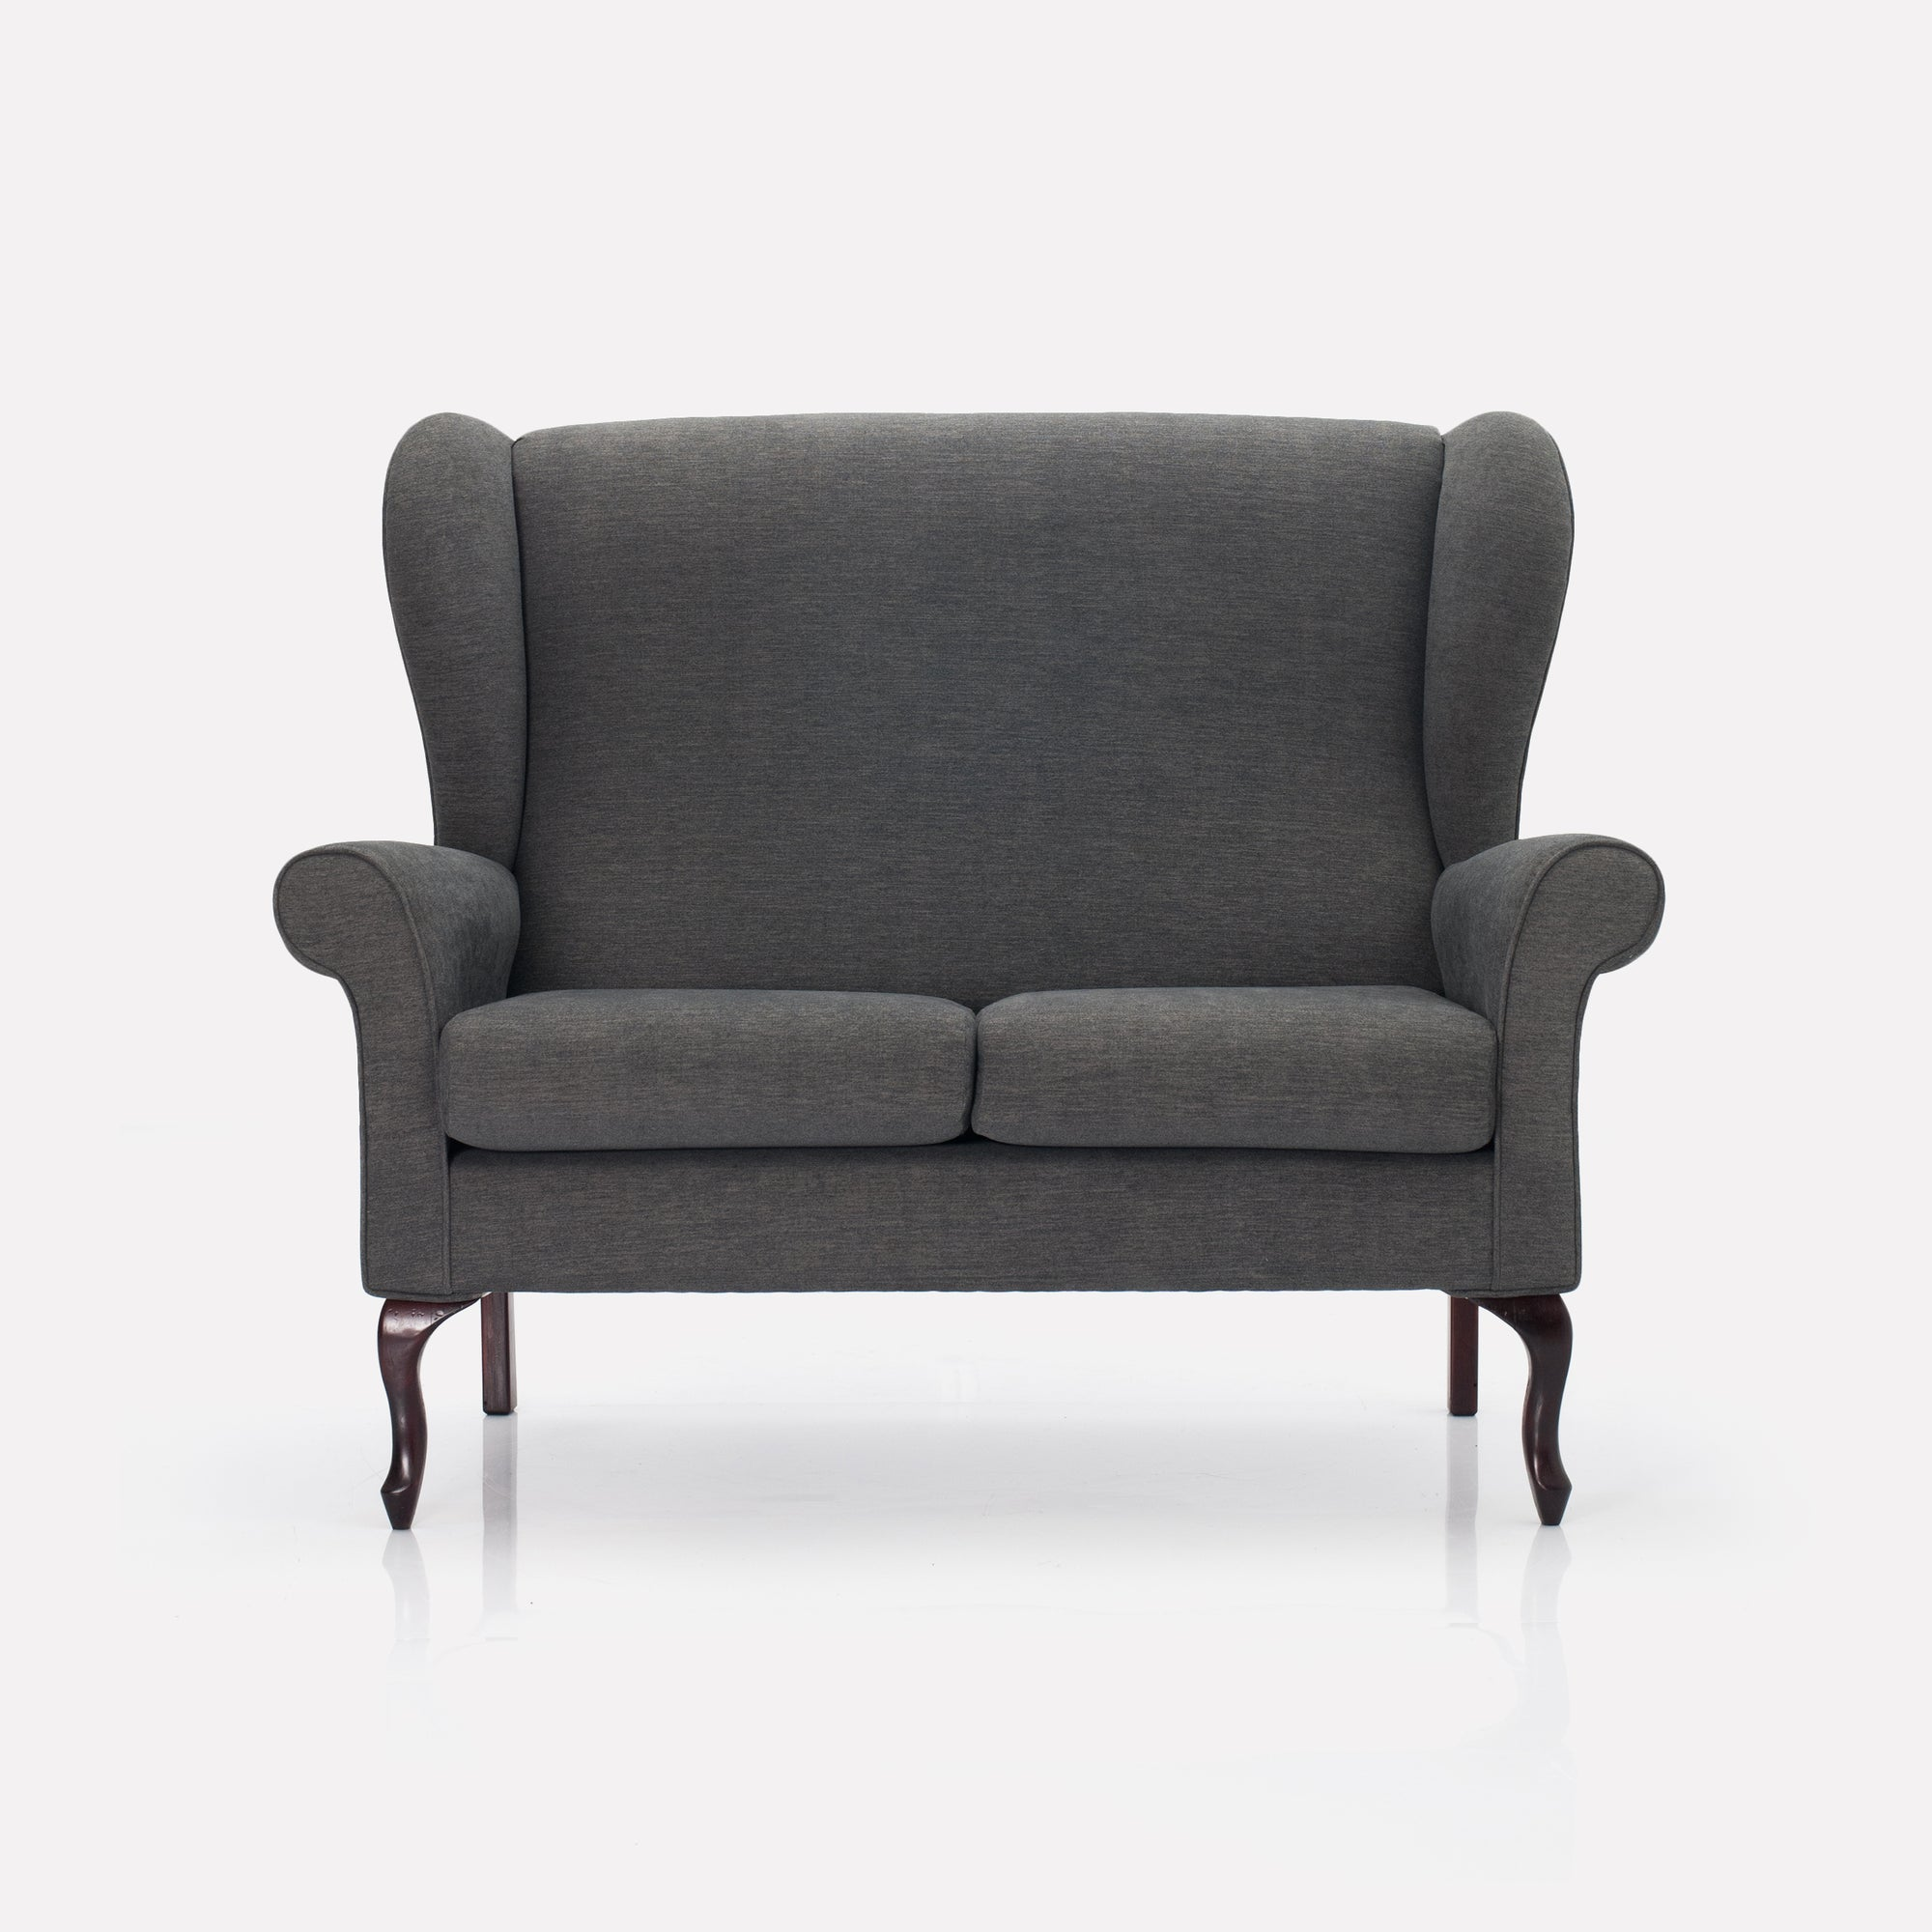 The Nancy Double Wingback